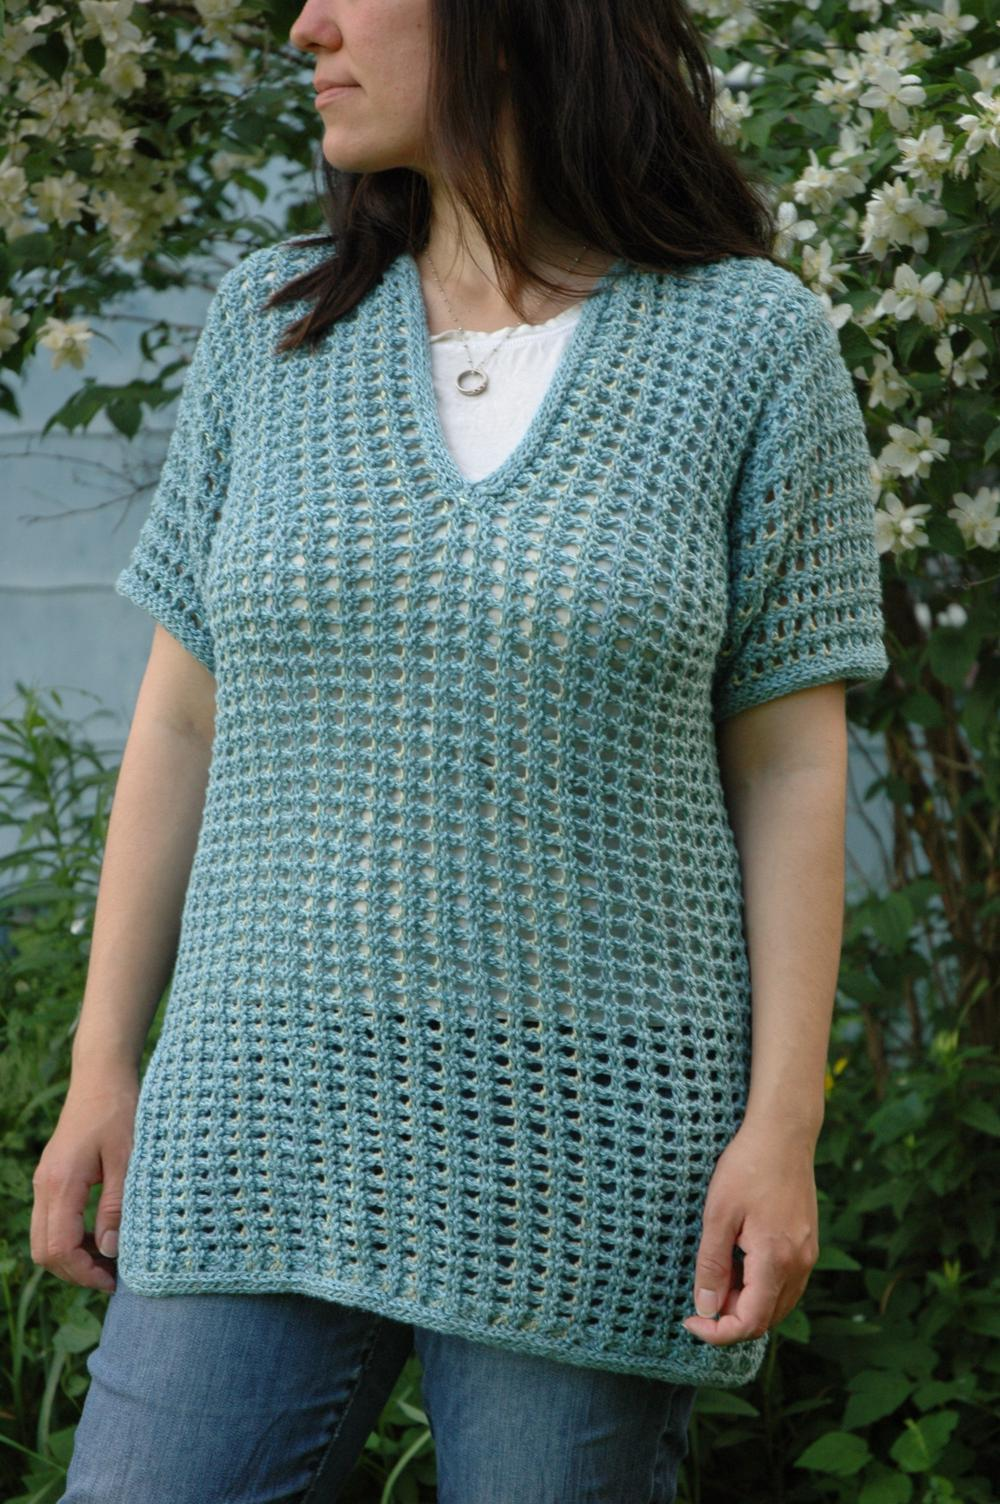 Knitting Patterns Galore Subtle Mesh Summer Sweater